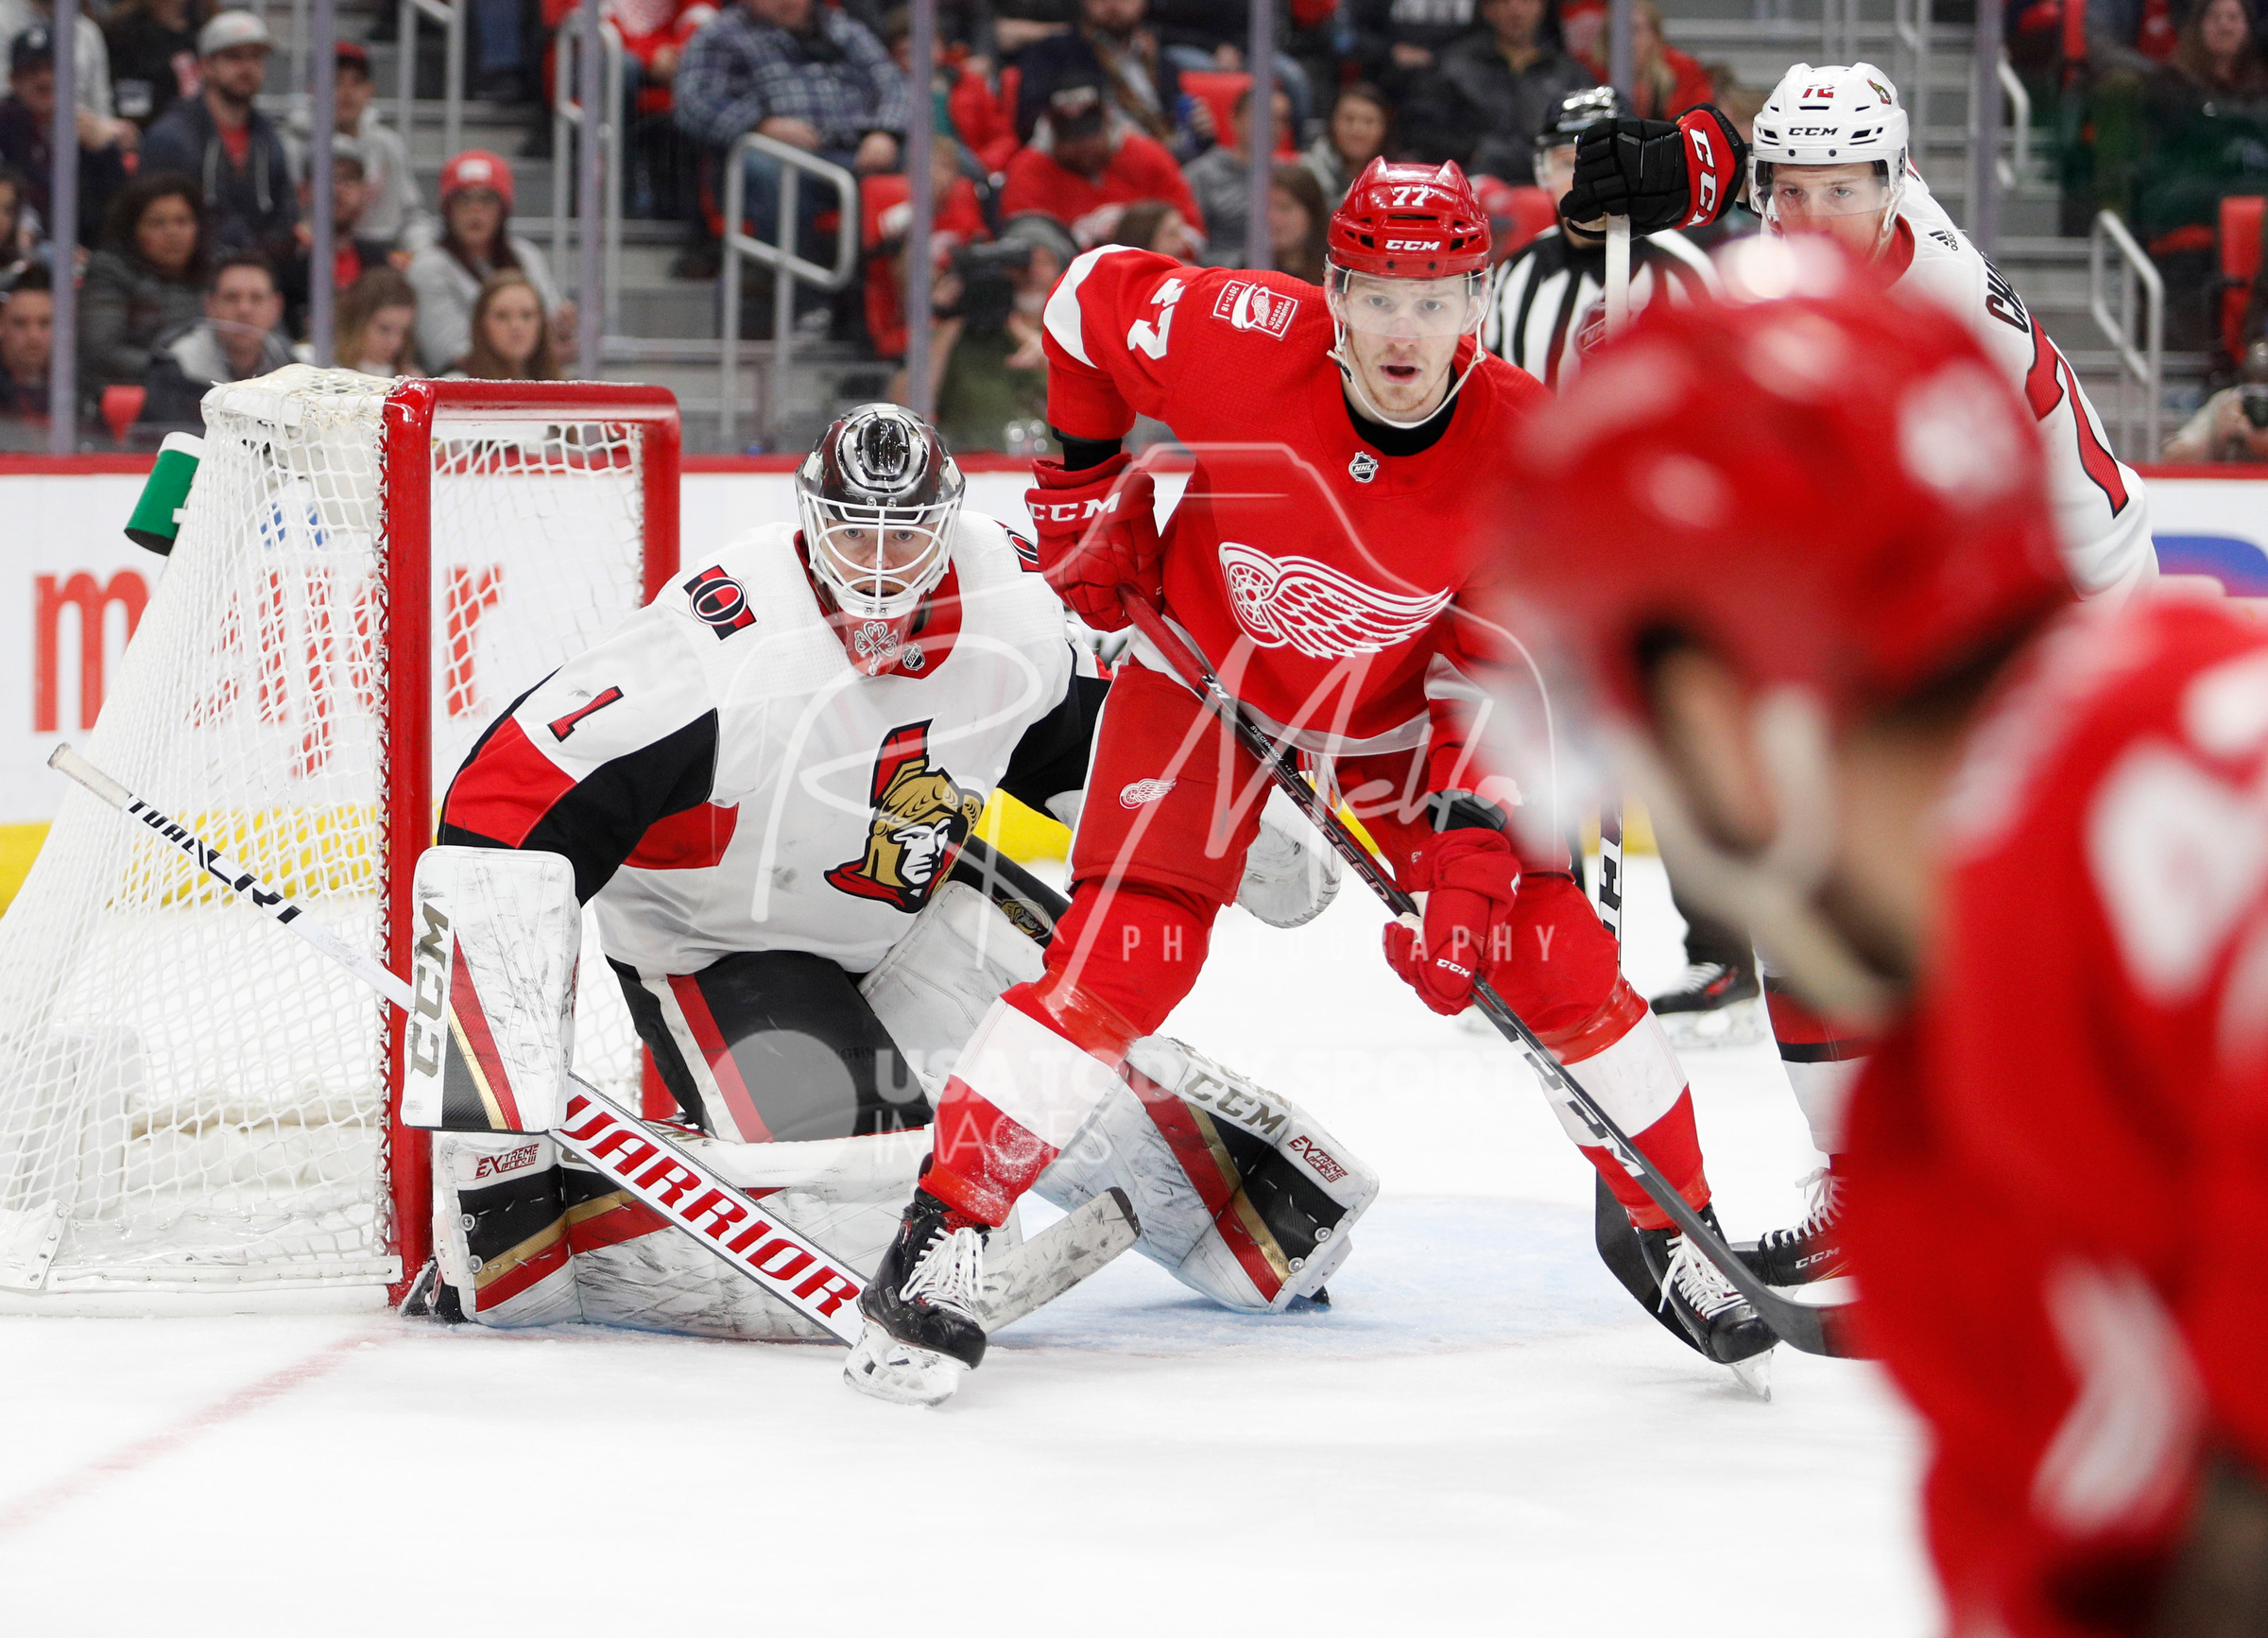 Mar 31, 2018; Detroit, MI, USA; Ottawa Senators goaltender Mike Condon (1) protects the side of the net against Detroit Red Wings right wing Evgeny Svechnikov (77) during the second period at Little Caesars Arena. Mandatory Credit: Raj Mehta-USA TODAY Sports